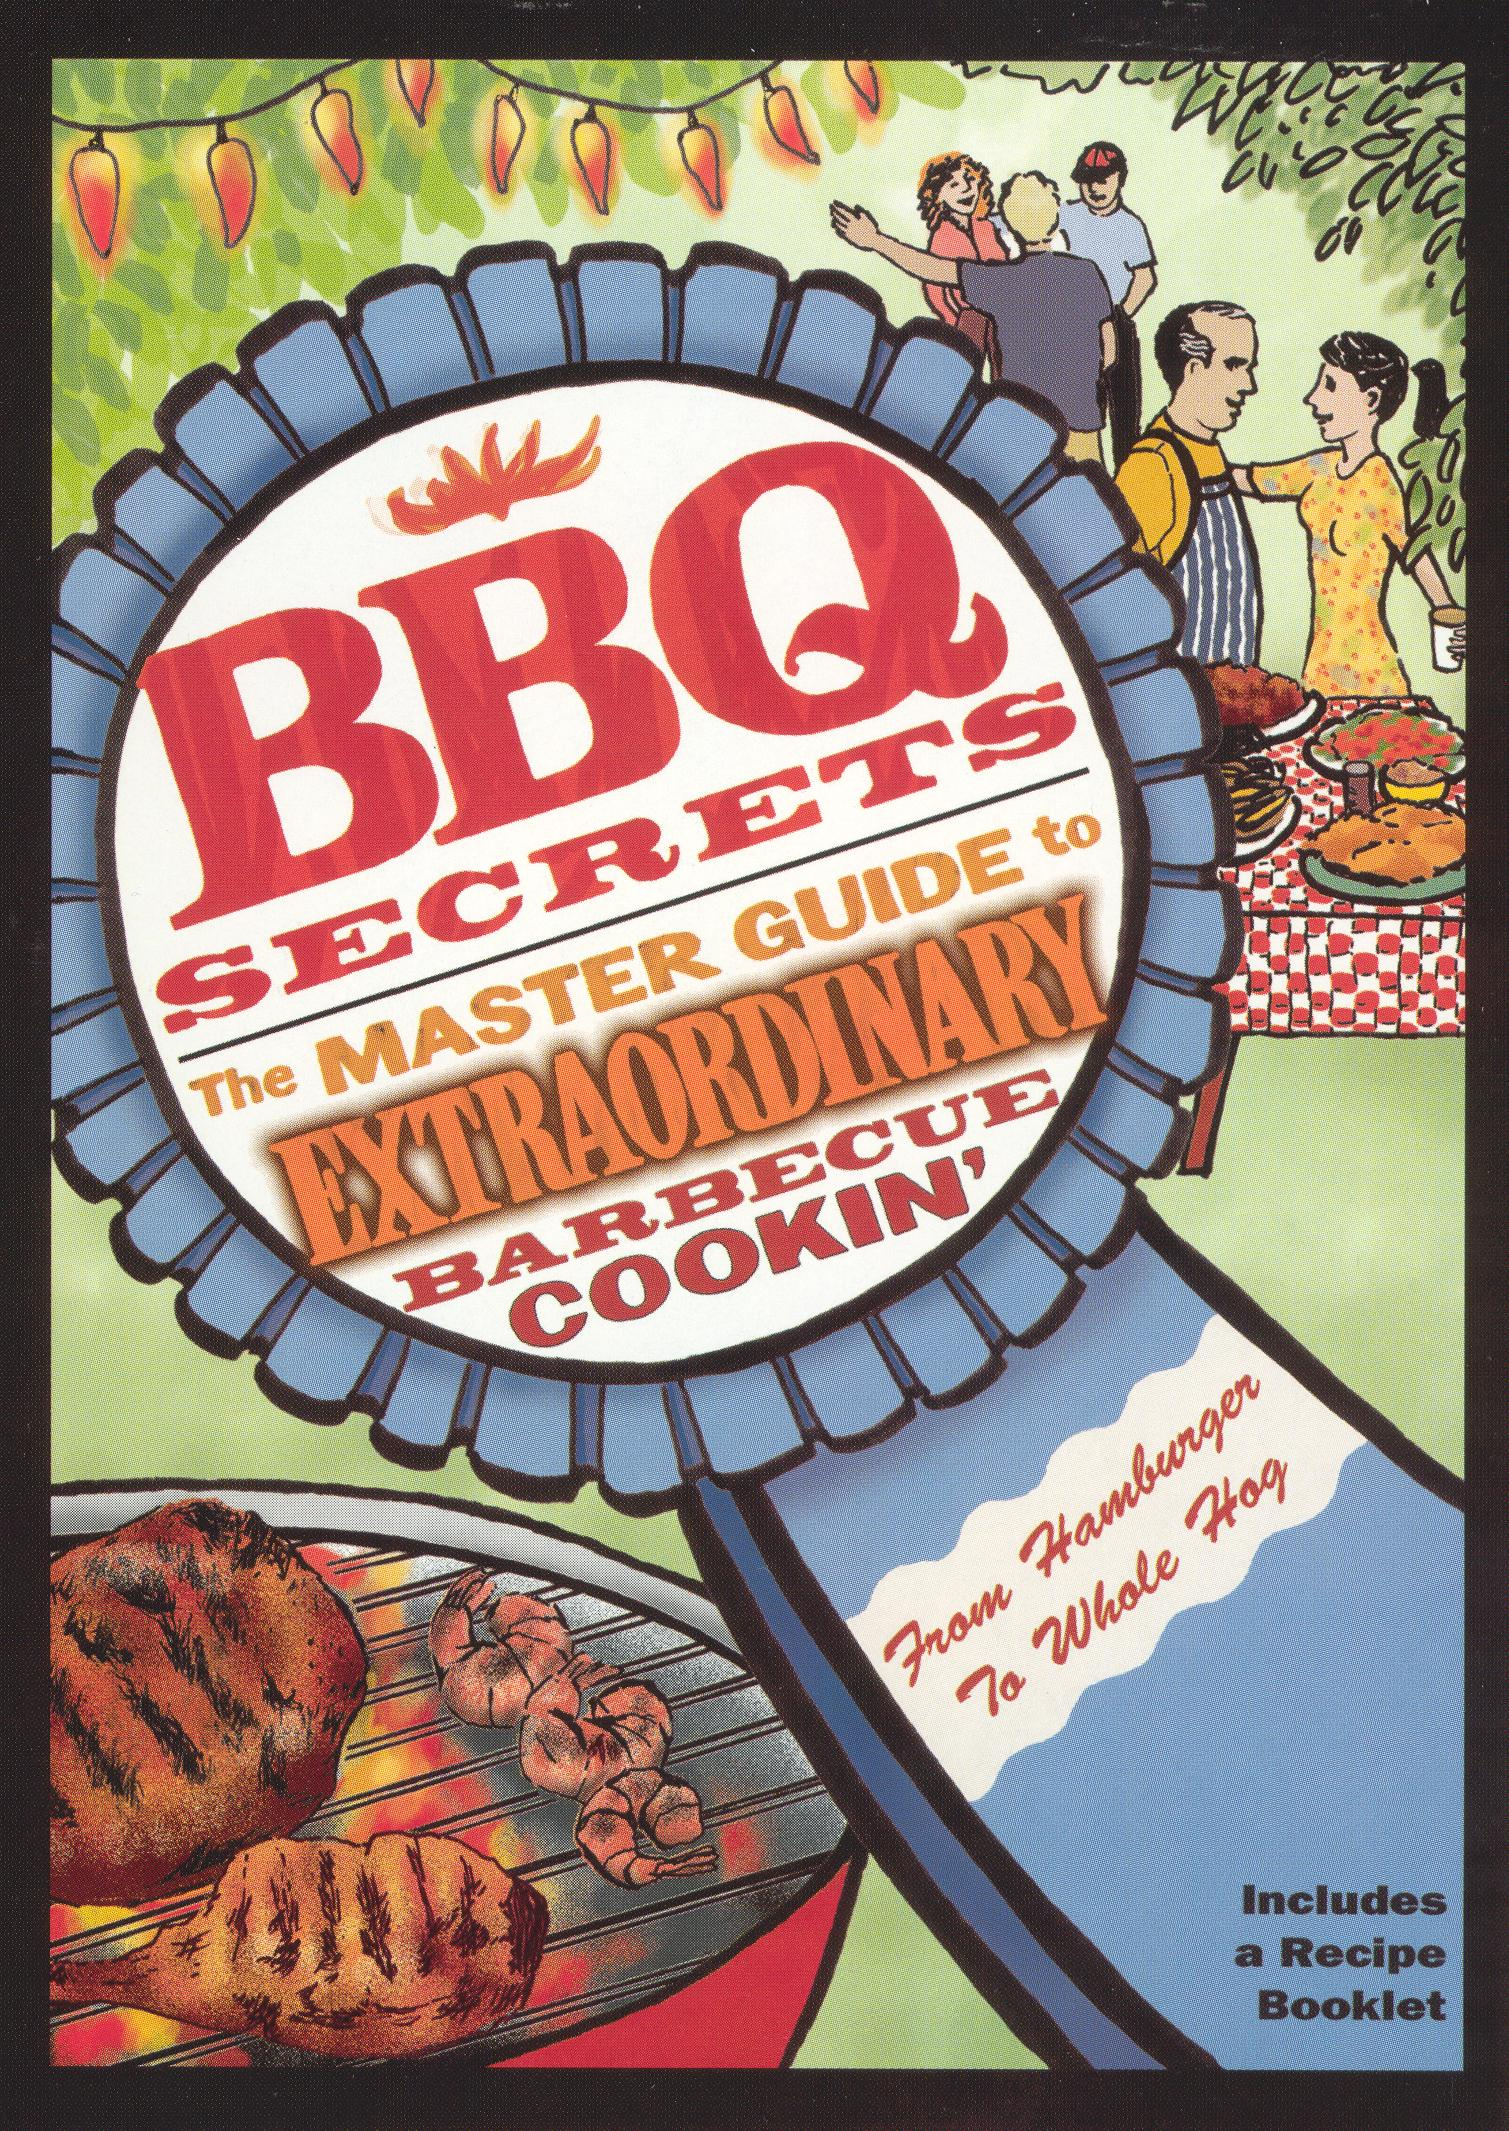 BBQ Secrets: The Master Guide to Extraordinary Barbecue Cookin'